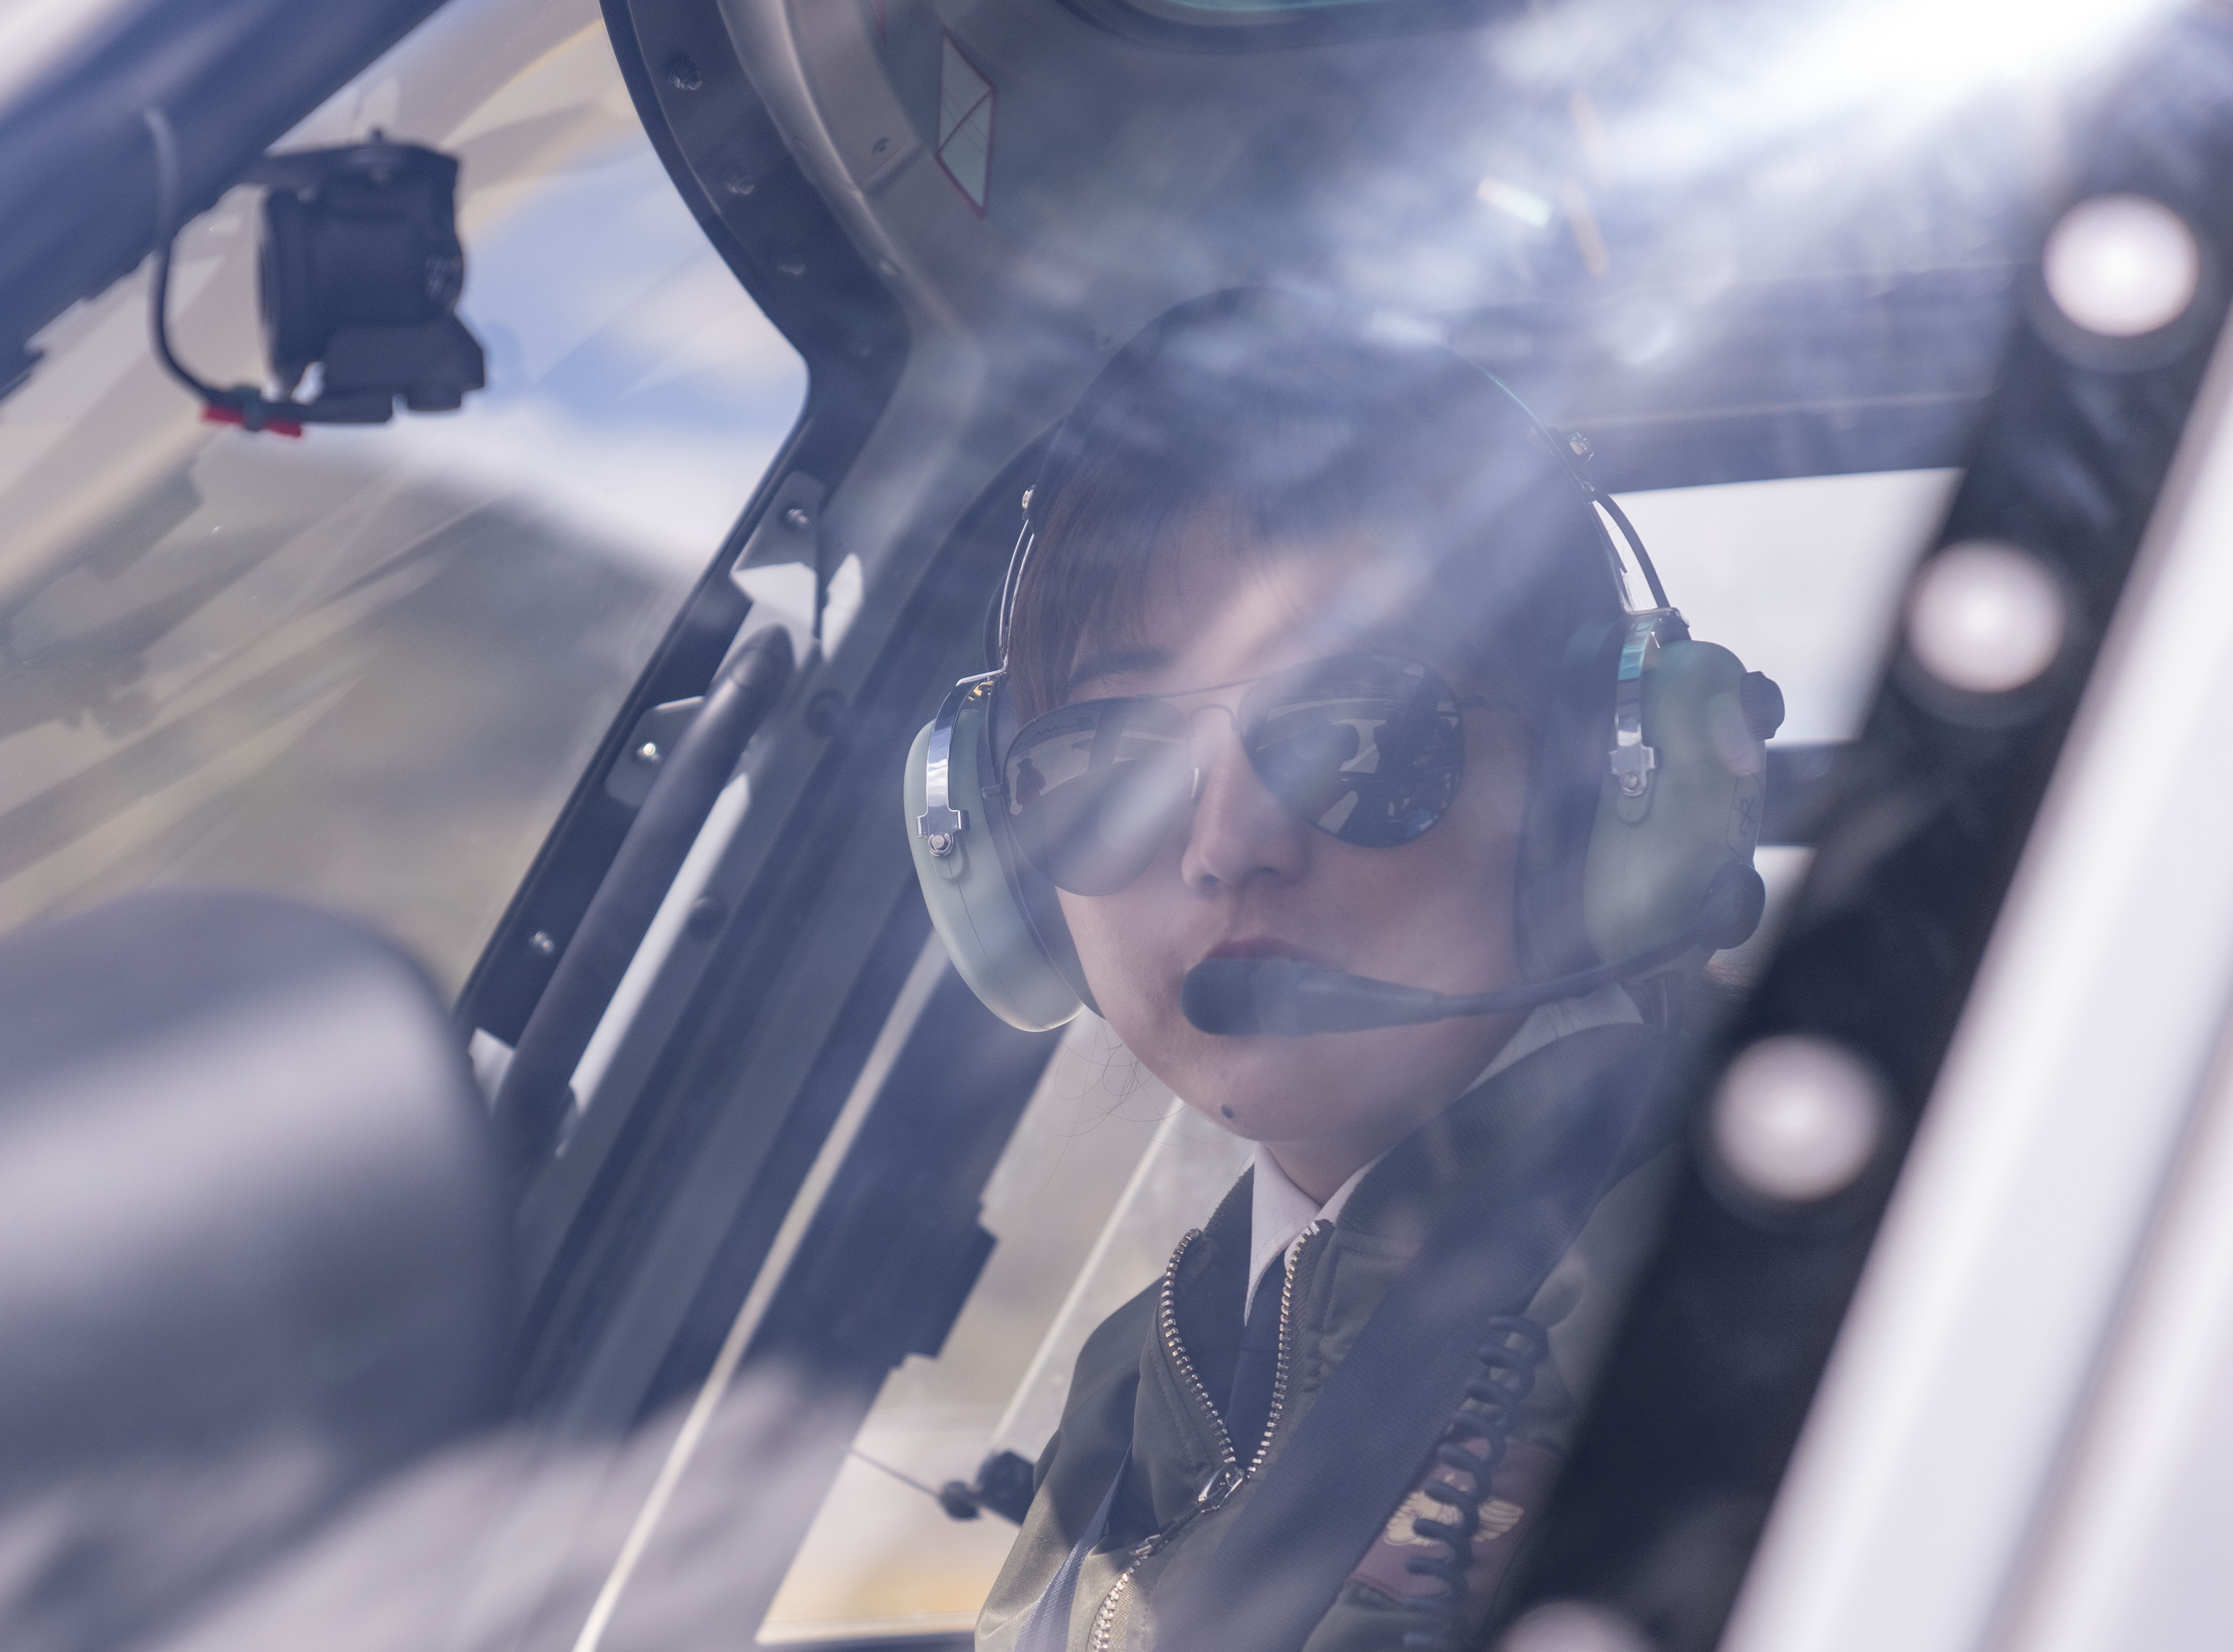 InTibet: Female Pilot Flies out of Poverty in China's Tibet - Xinhua | English.news.cn